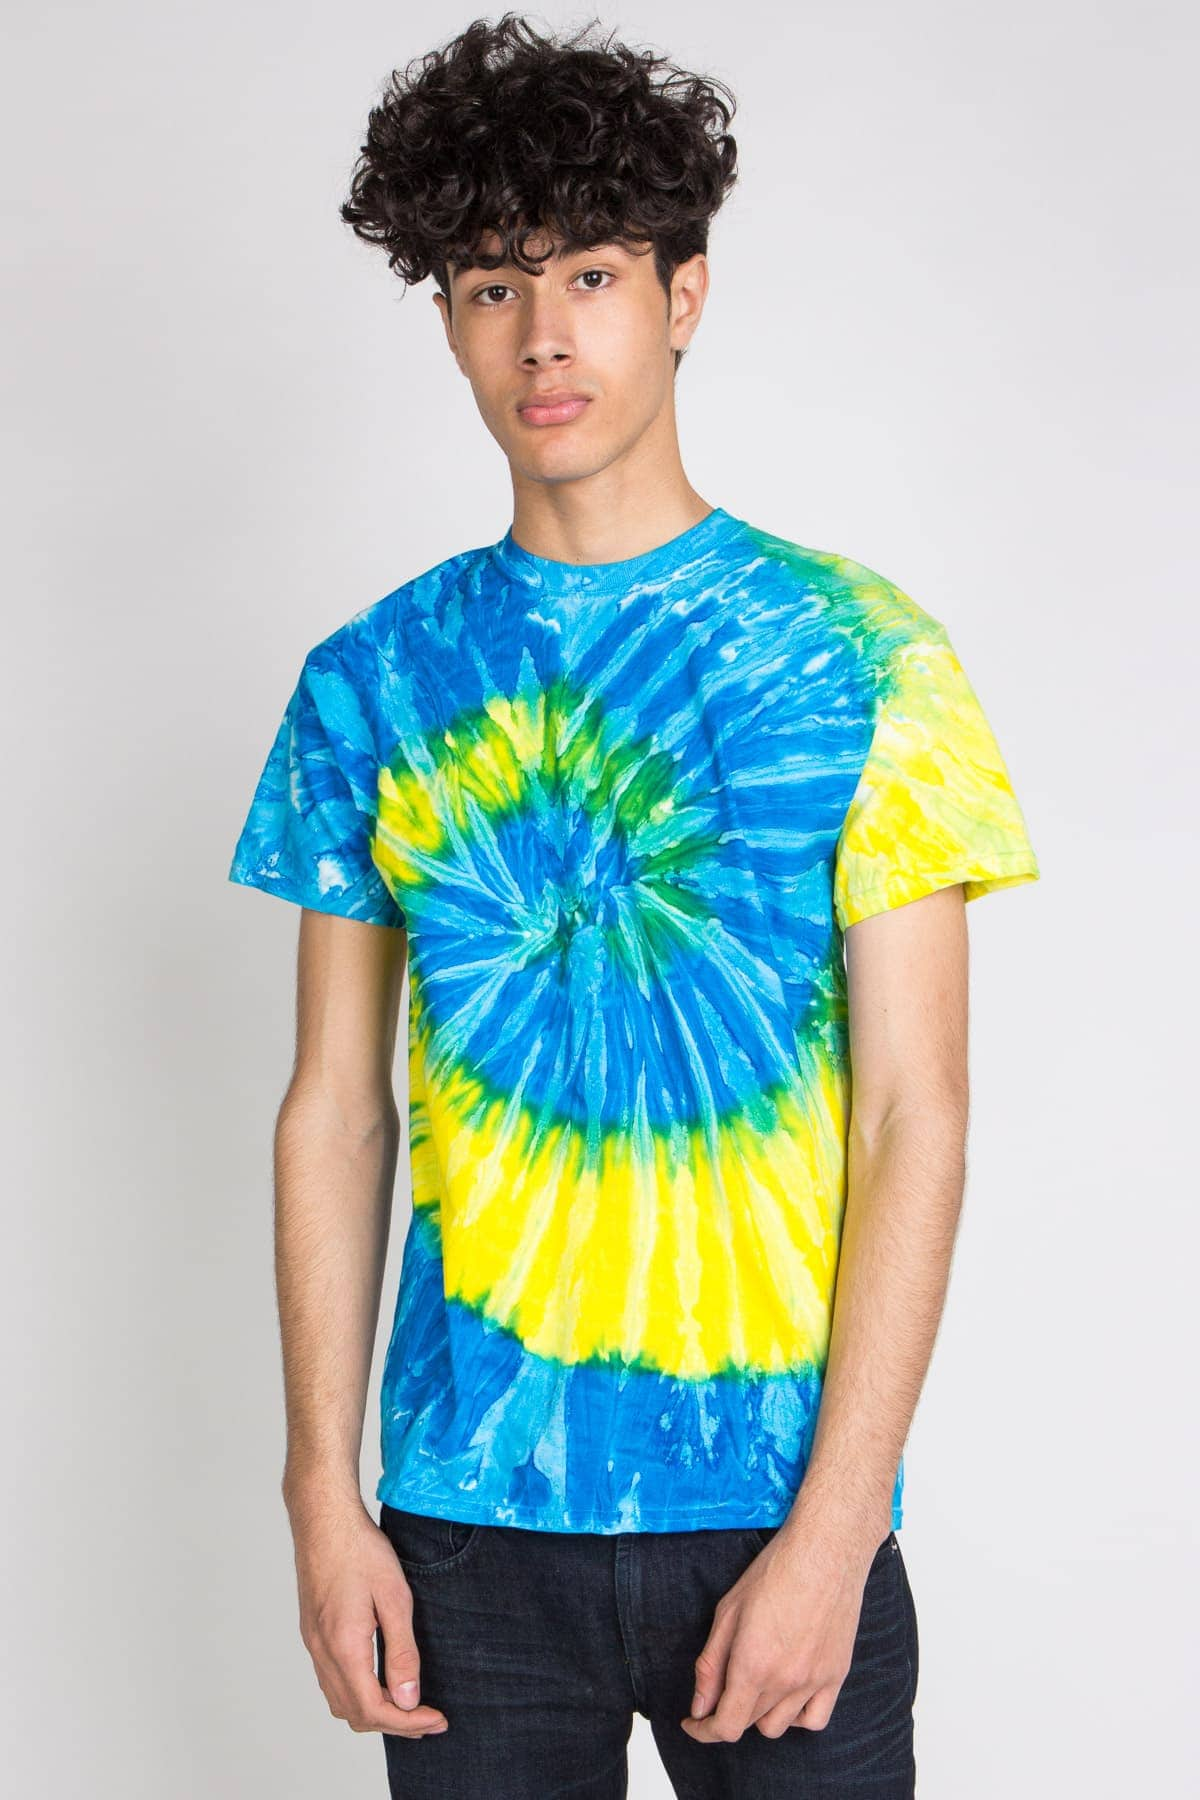 blue and yellow swirl tie dye tee shirt